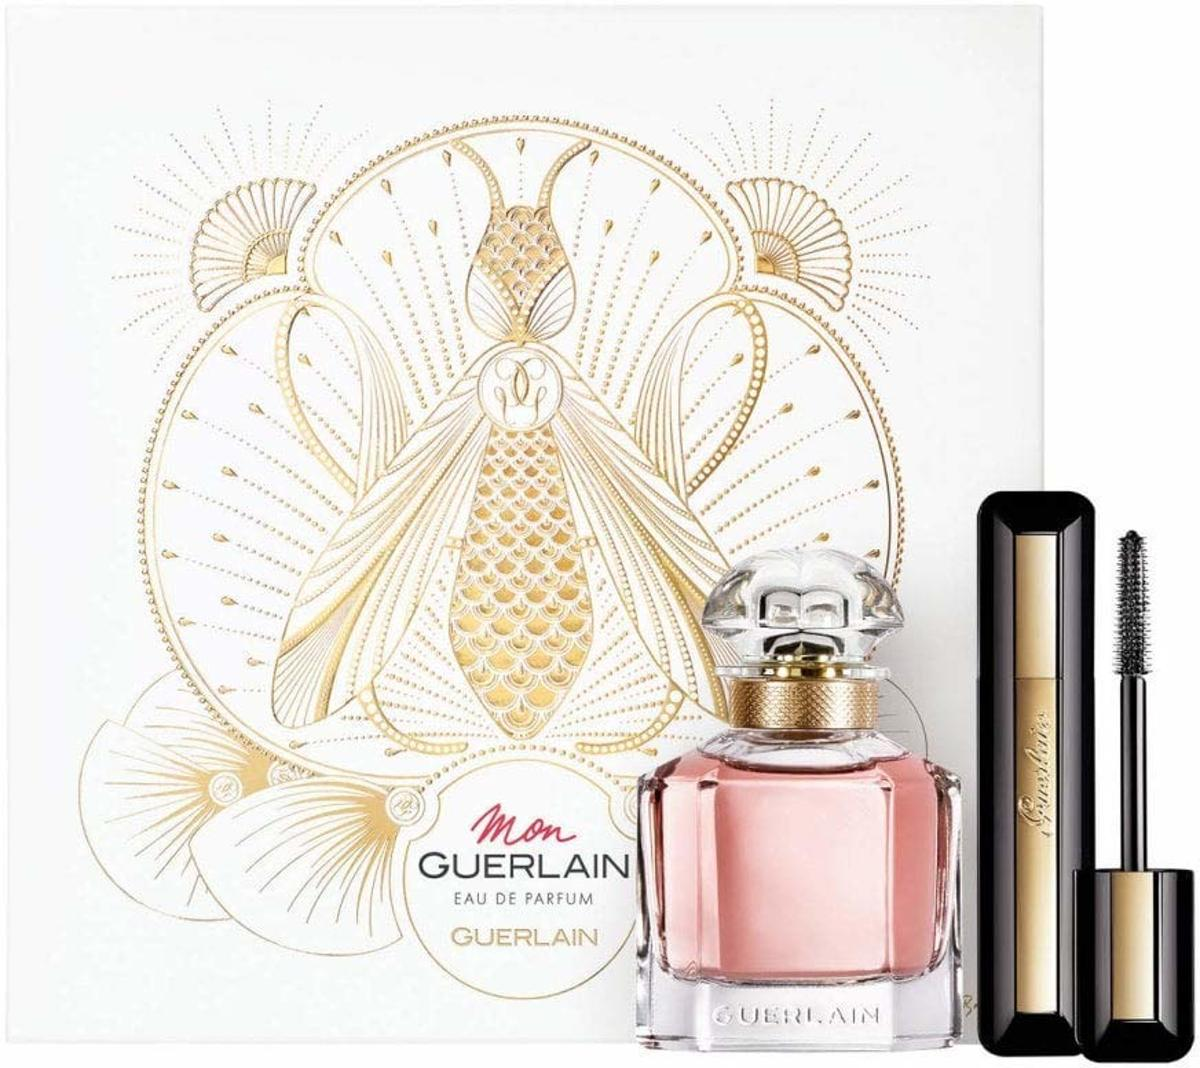 Guerlain Mon Guerlain 50 ml Edp + Mascara set